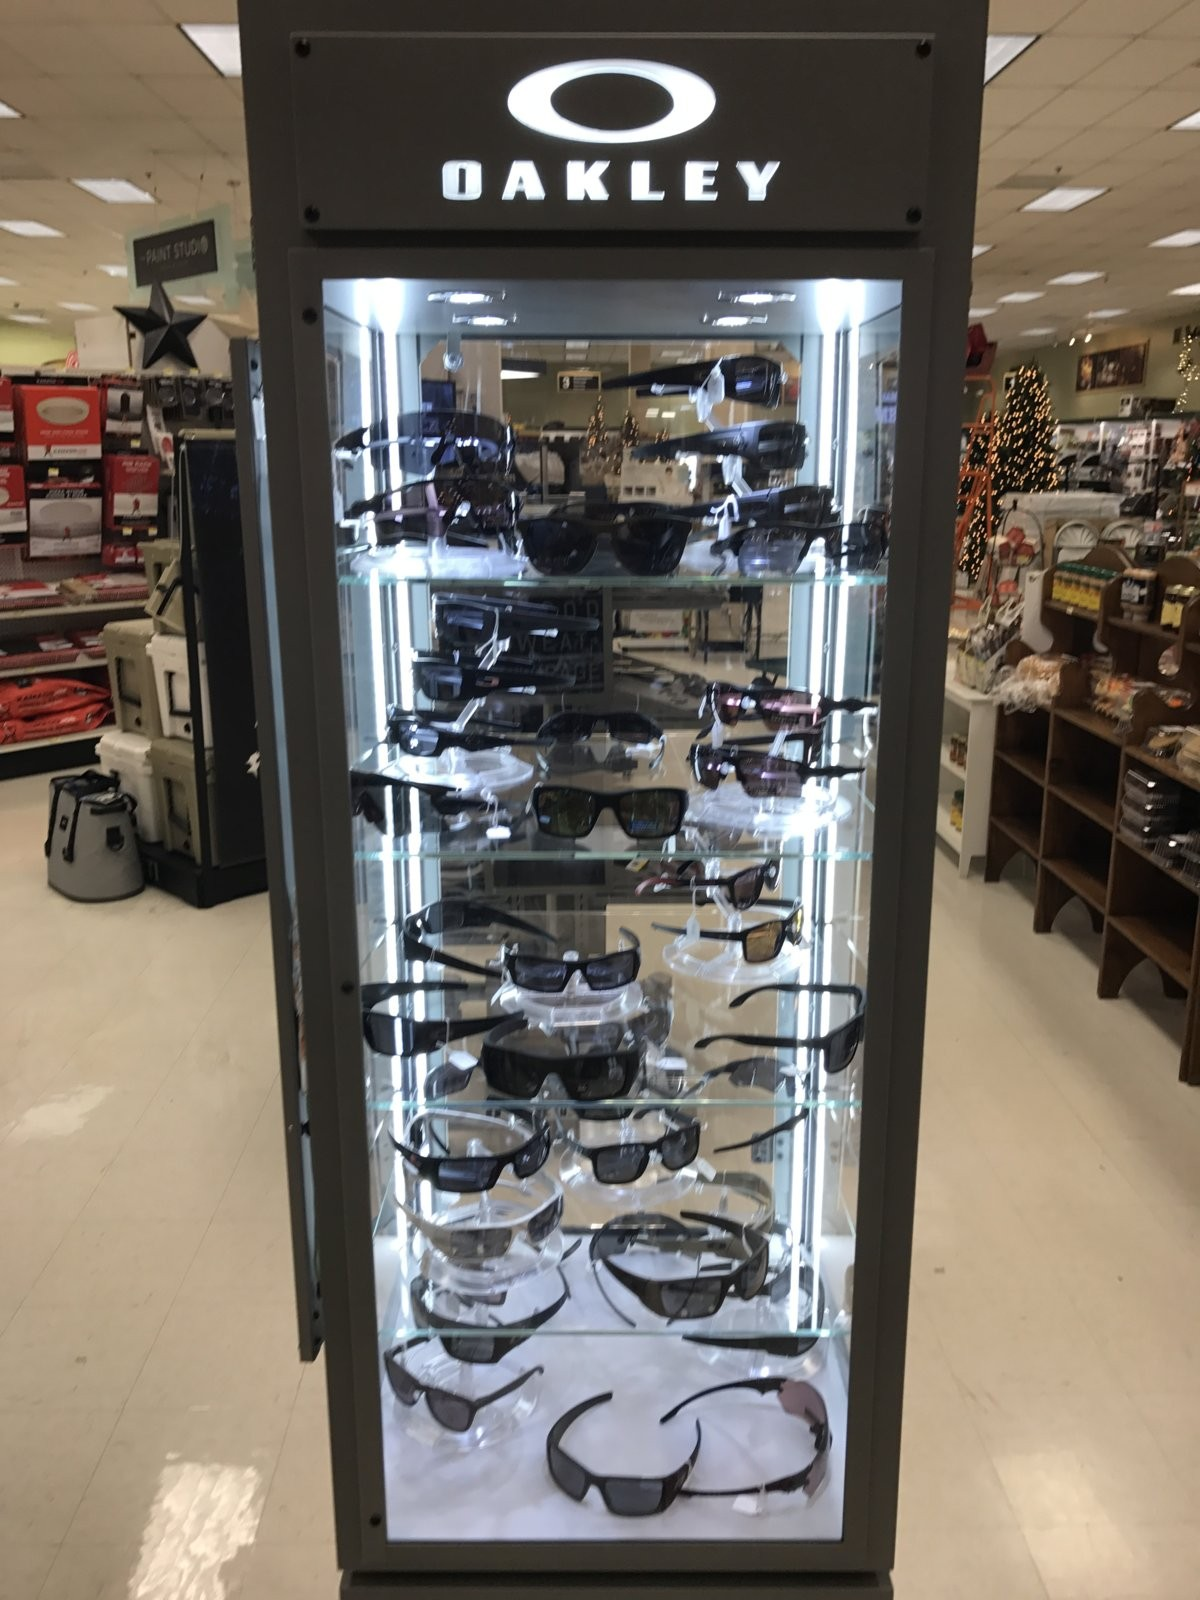 74448d0f66ef Oakley Sunglasses Display Case For Sale « One More Soul